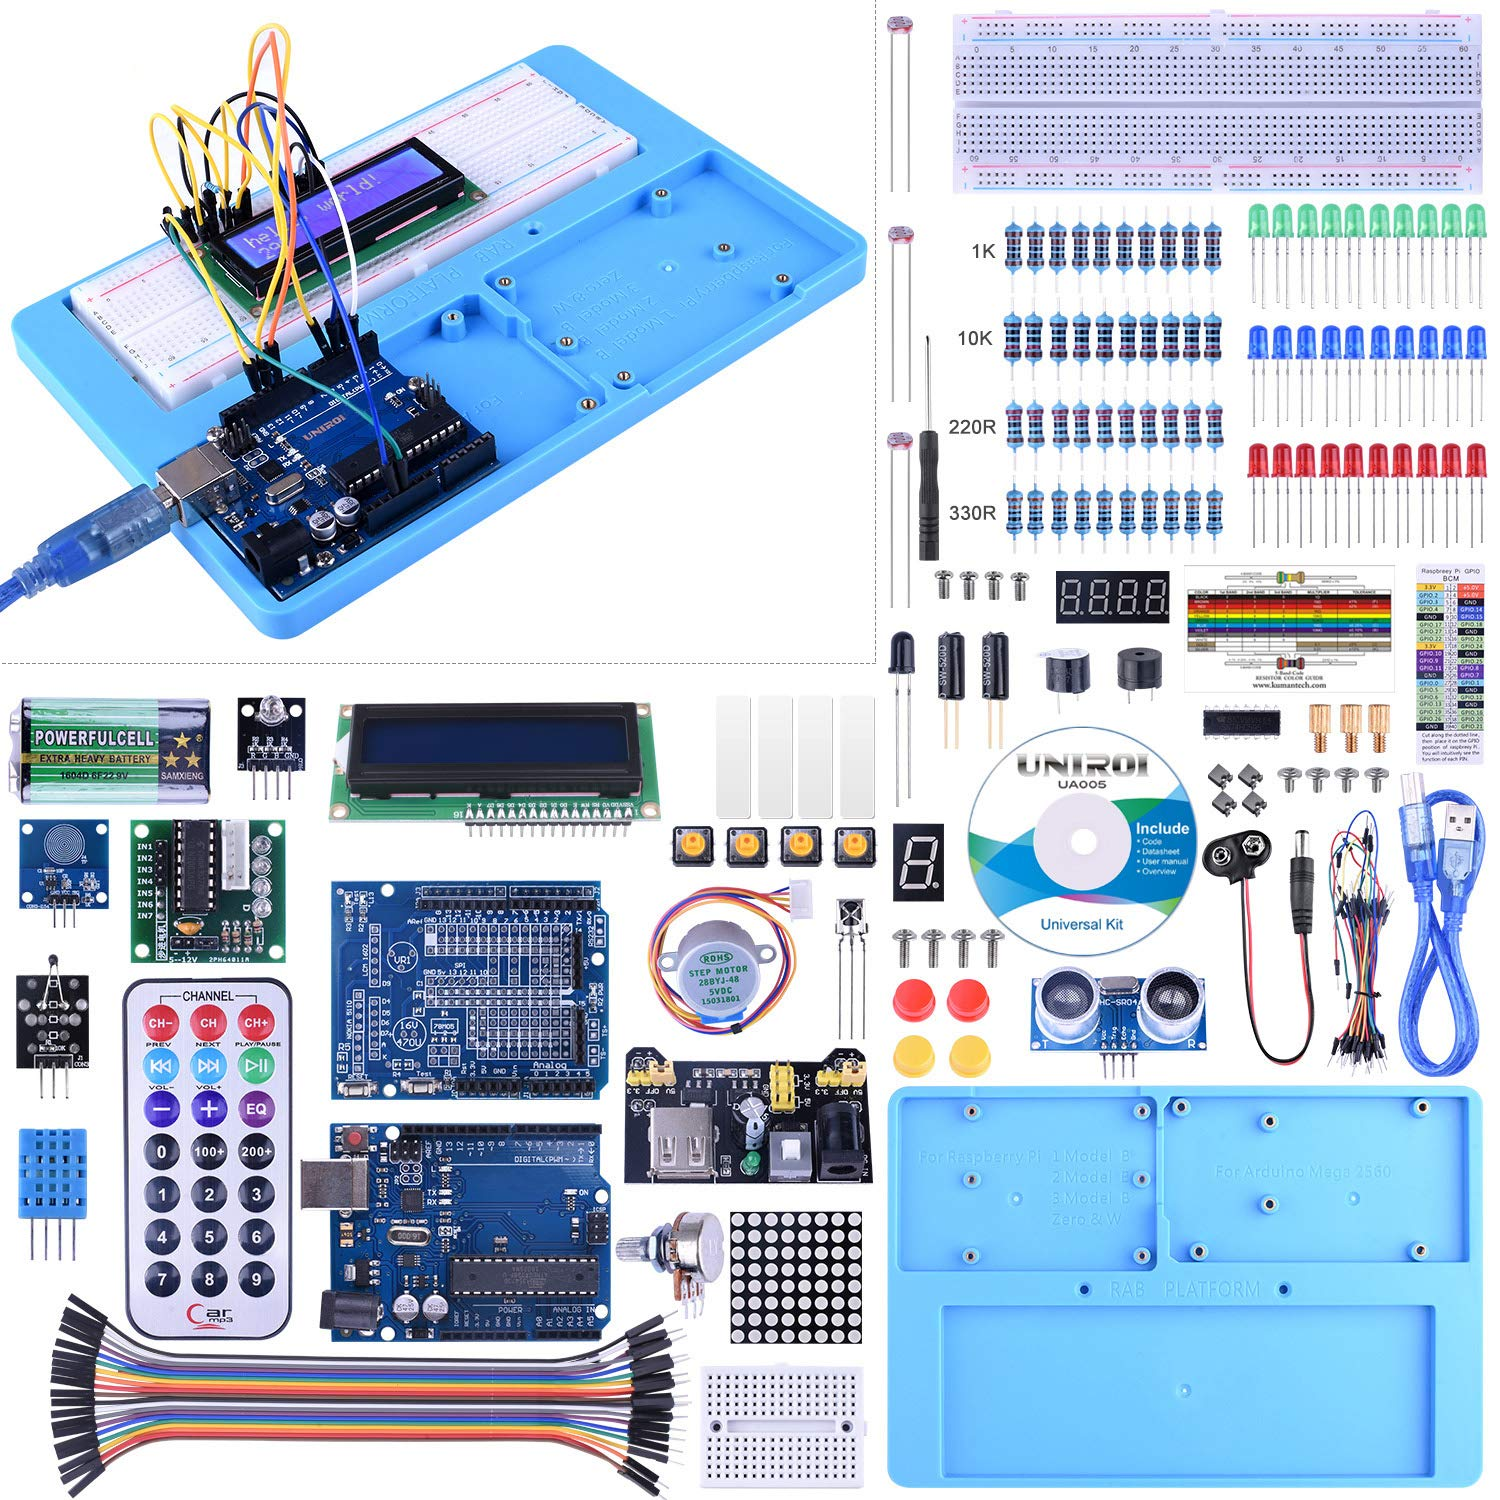 KINCREA Ultimate Starter Kit, Upgraded Project Starter Kit for Robot Nano Breadbroad Kit with RAB Holder, 260 Pages Free Tutorials